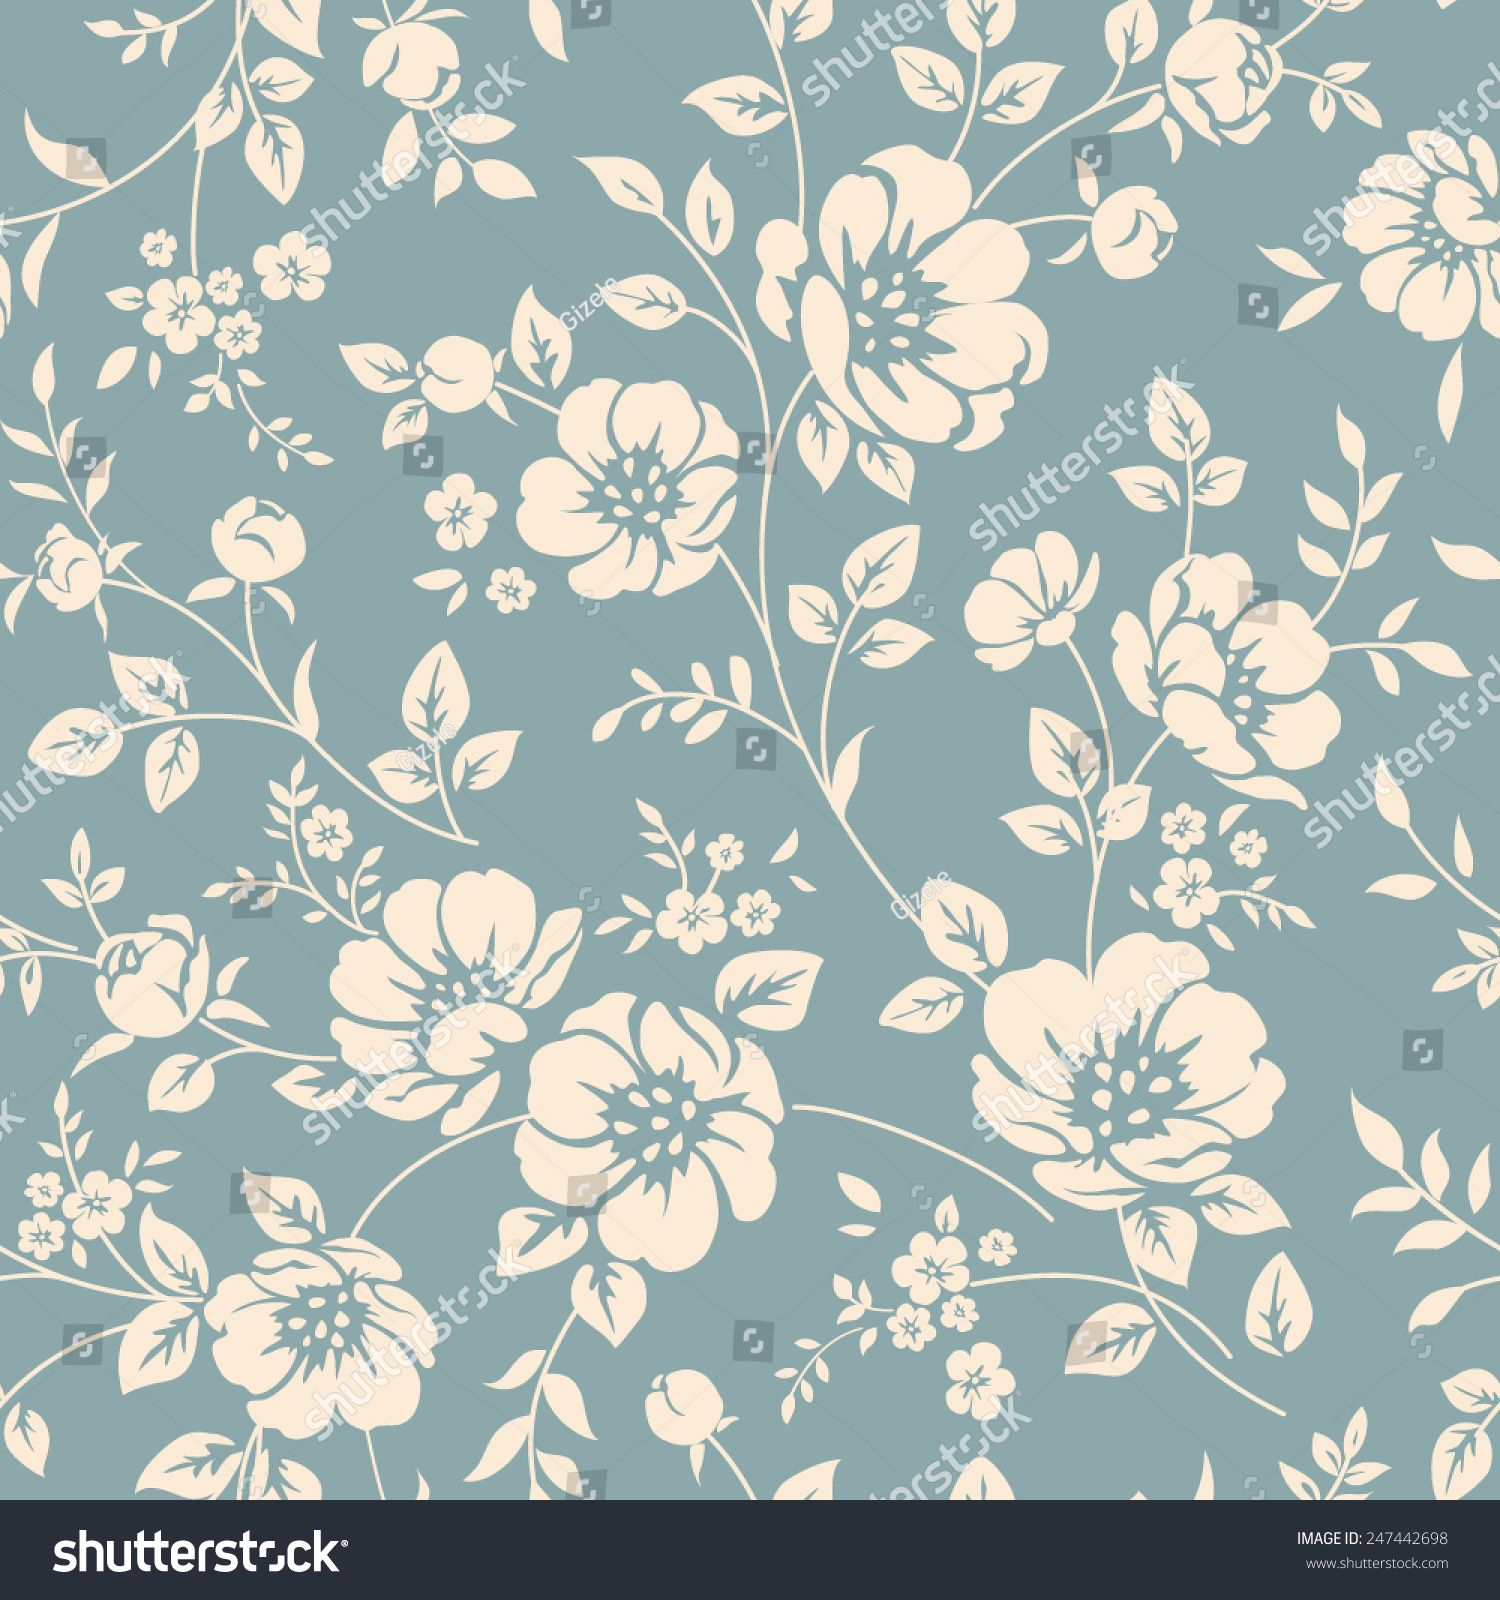 Seamless Vector Floral Wallpaper Decorative Vintage Pattern In